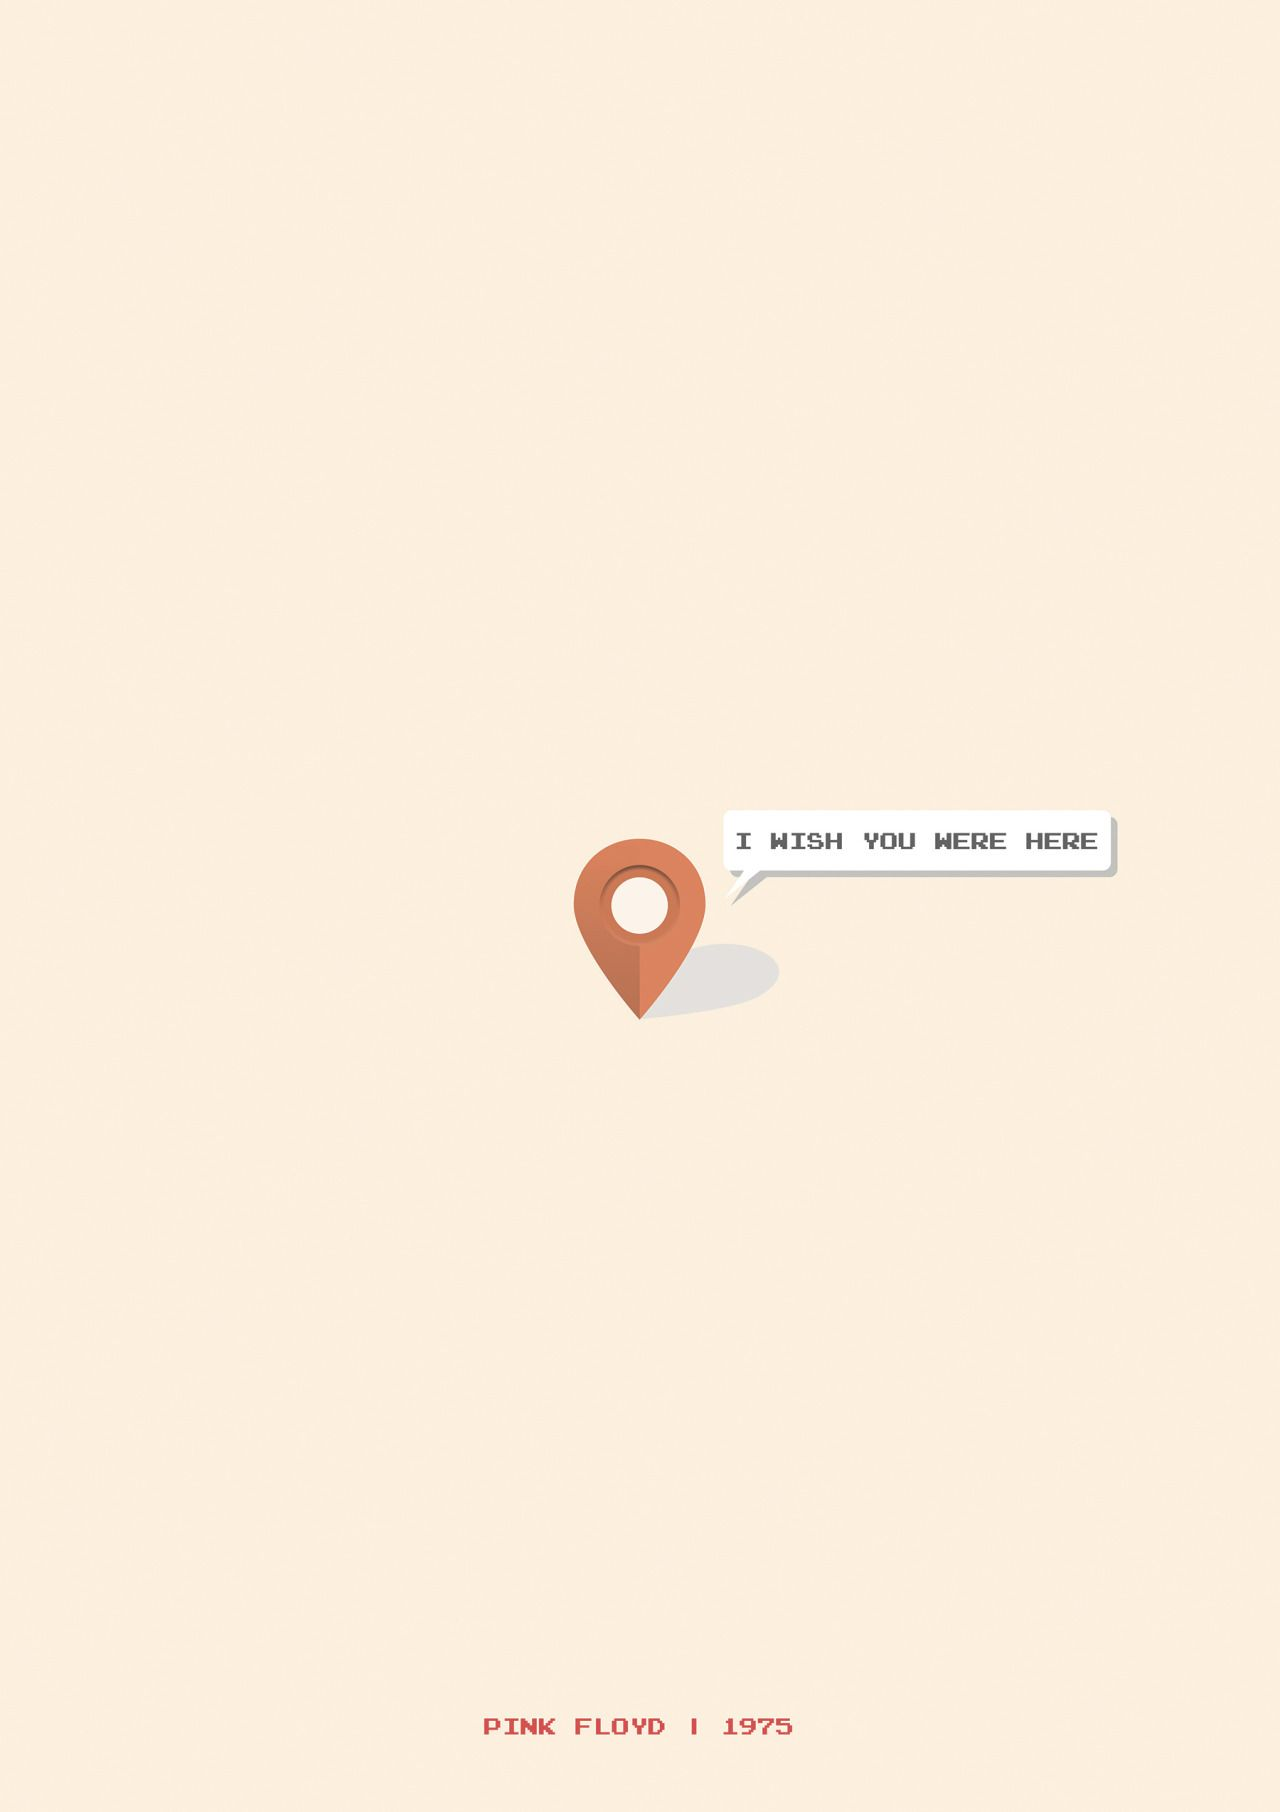 Wish You Were Here Quotes I Wish You Were Here  Dies & Das  Pinterest  Qoutes And Prints